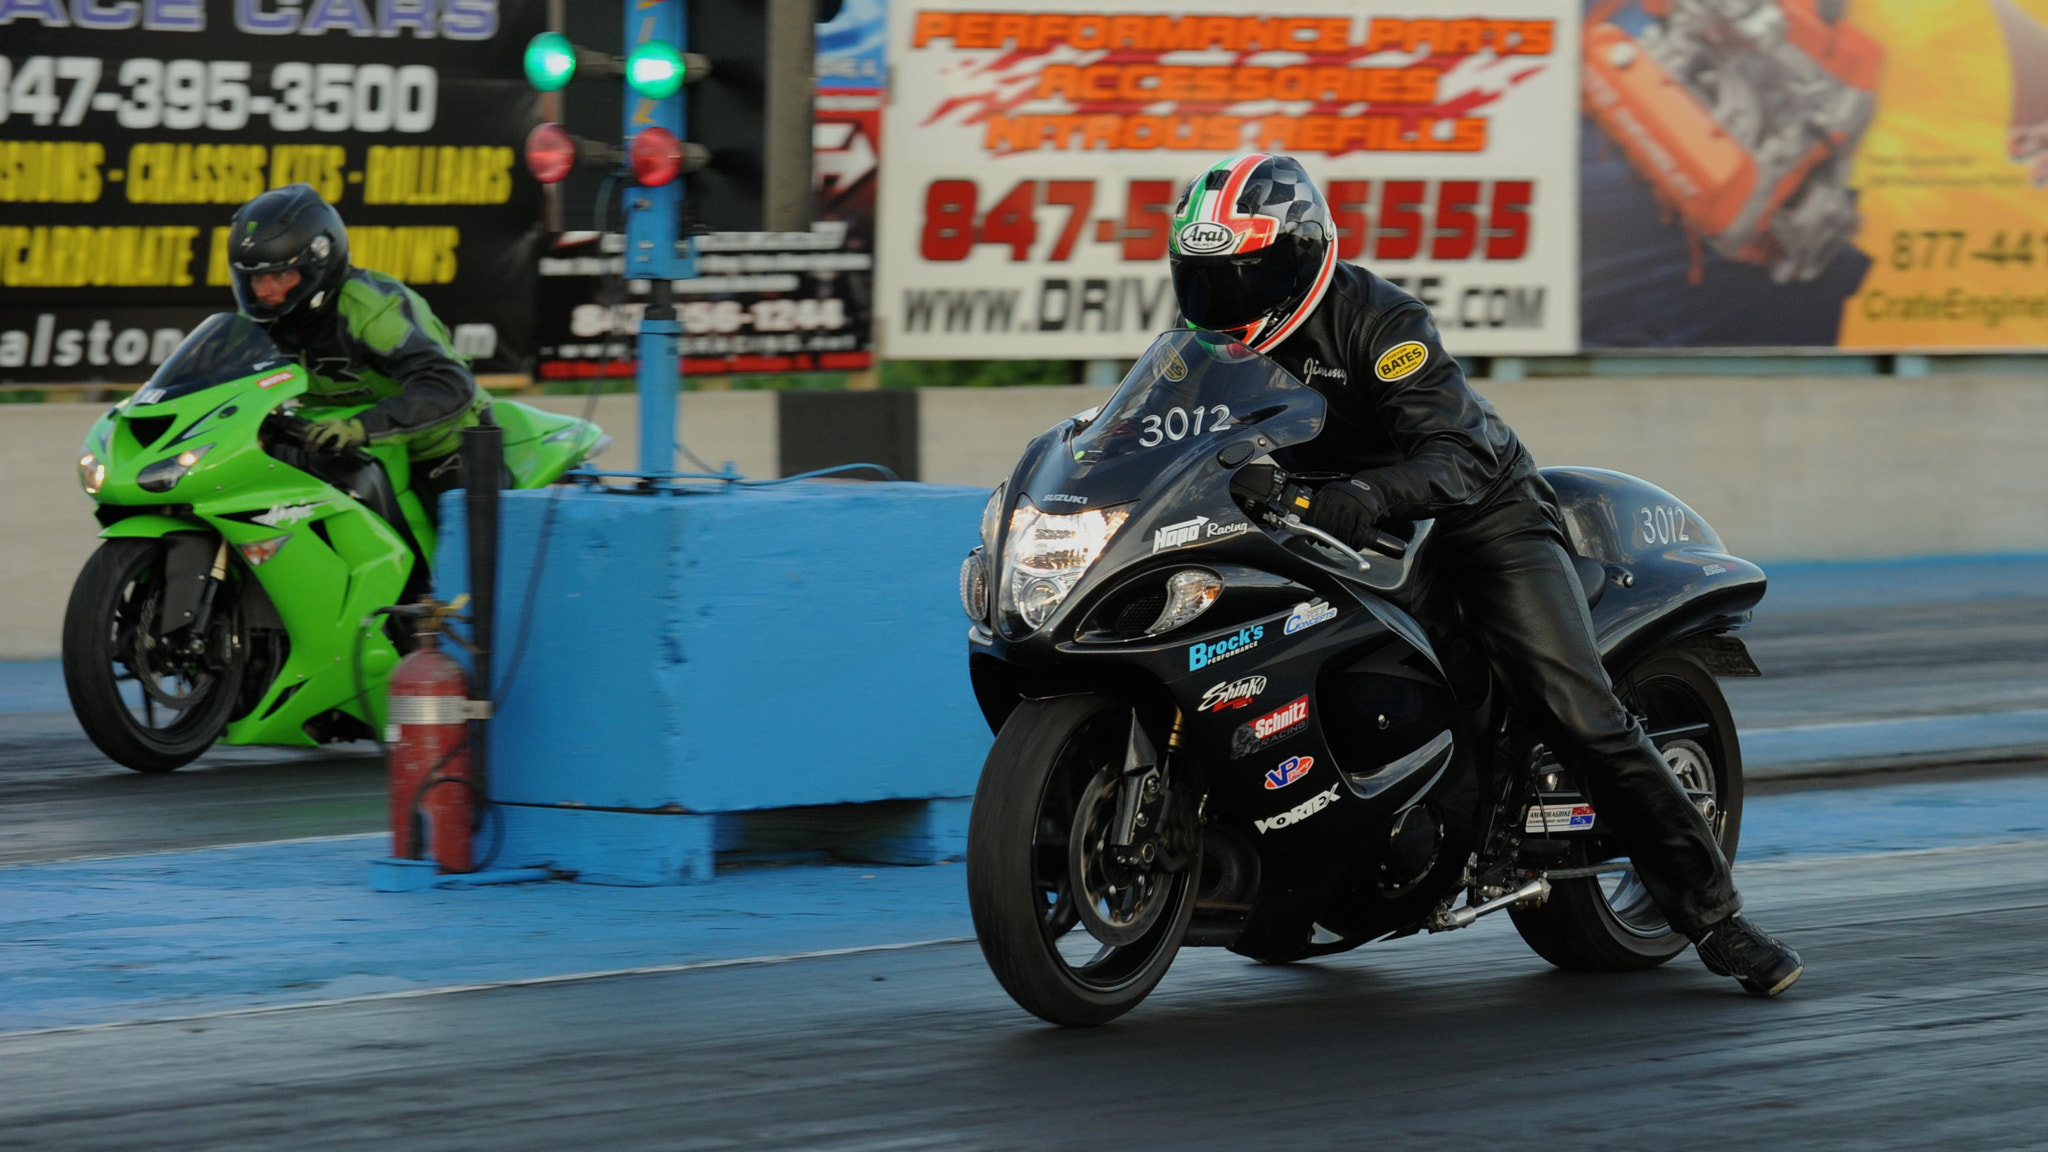 Photograph Motorcycle Race  by Mark Singleton on 500px